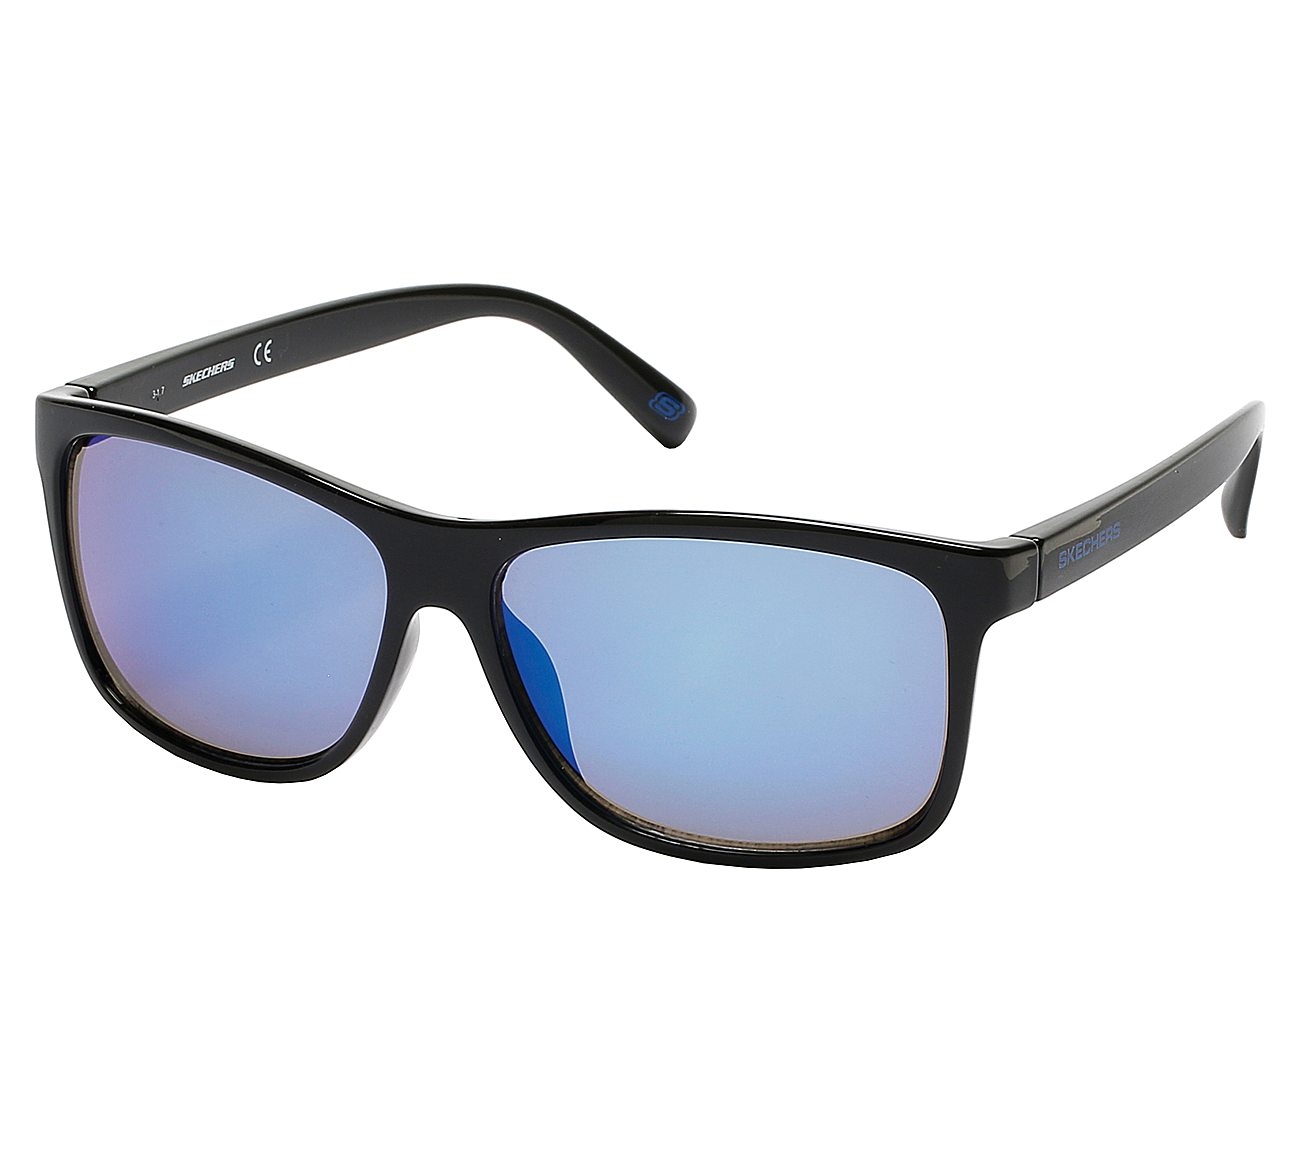 Buy SKECHERS Flat Top Sunglasses Accessories Shoes only $13.00